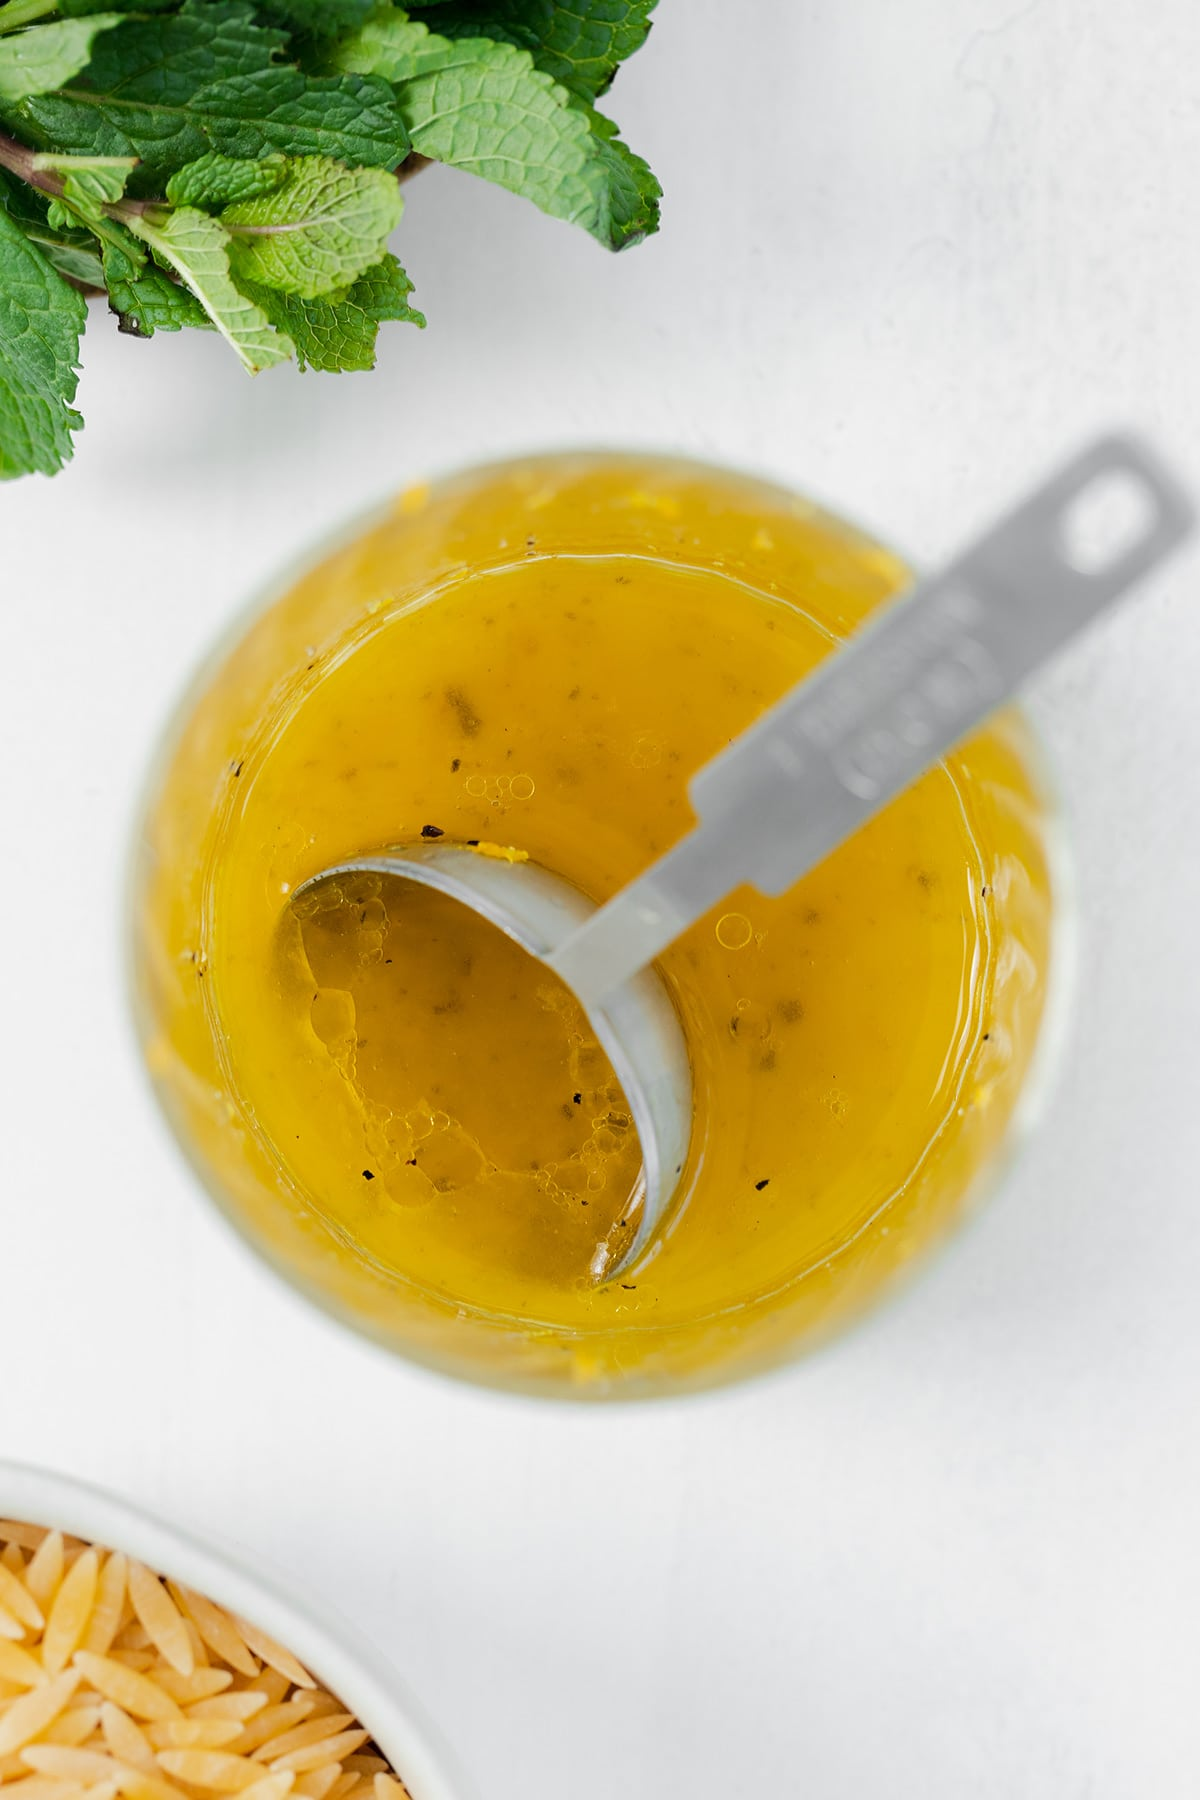 Lemon vinaigrette in a small glass with a measuring spoon in it. On a white background with fresh mint in the top left corner and dry orzo in the bottom left corner.